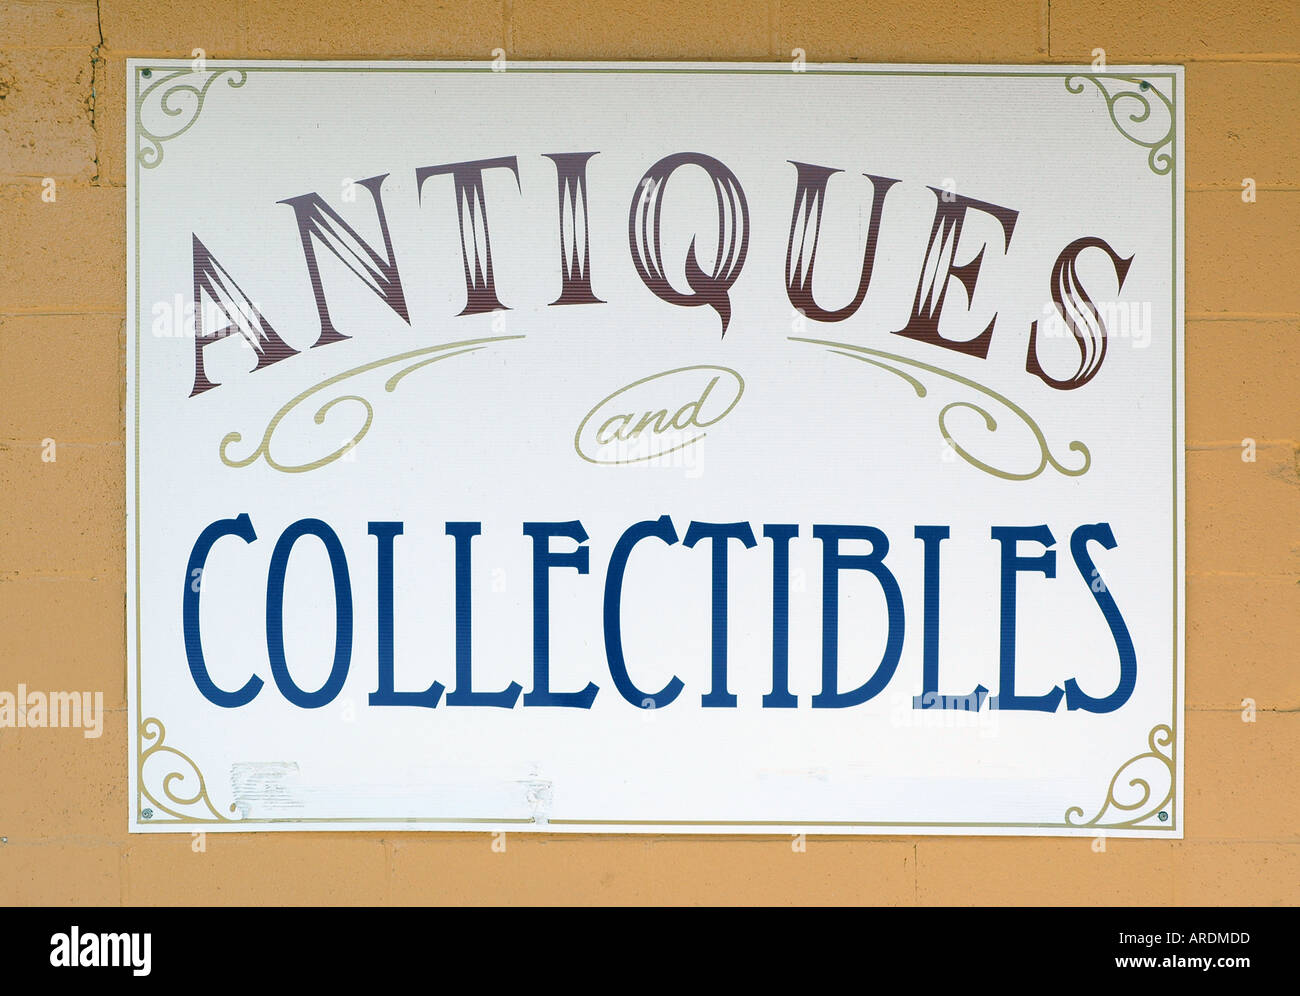 An Antiques And Collectibles Sign In Wayne Alberta Canada